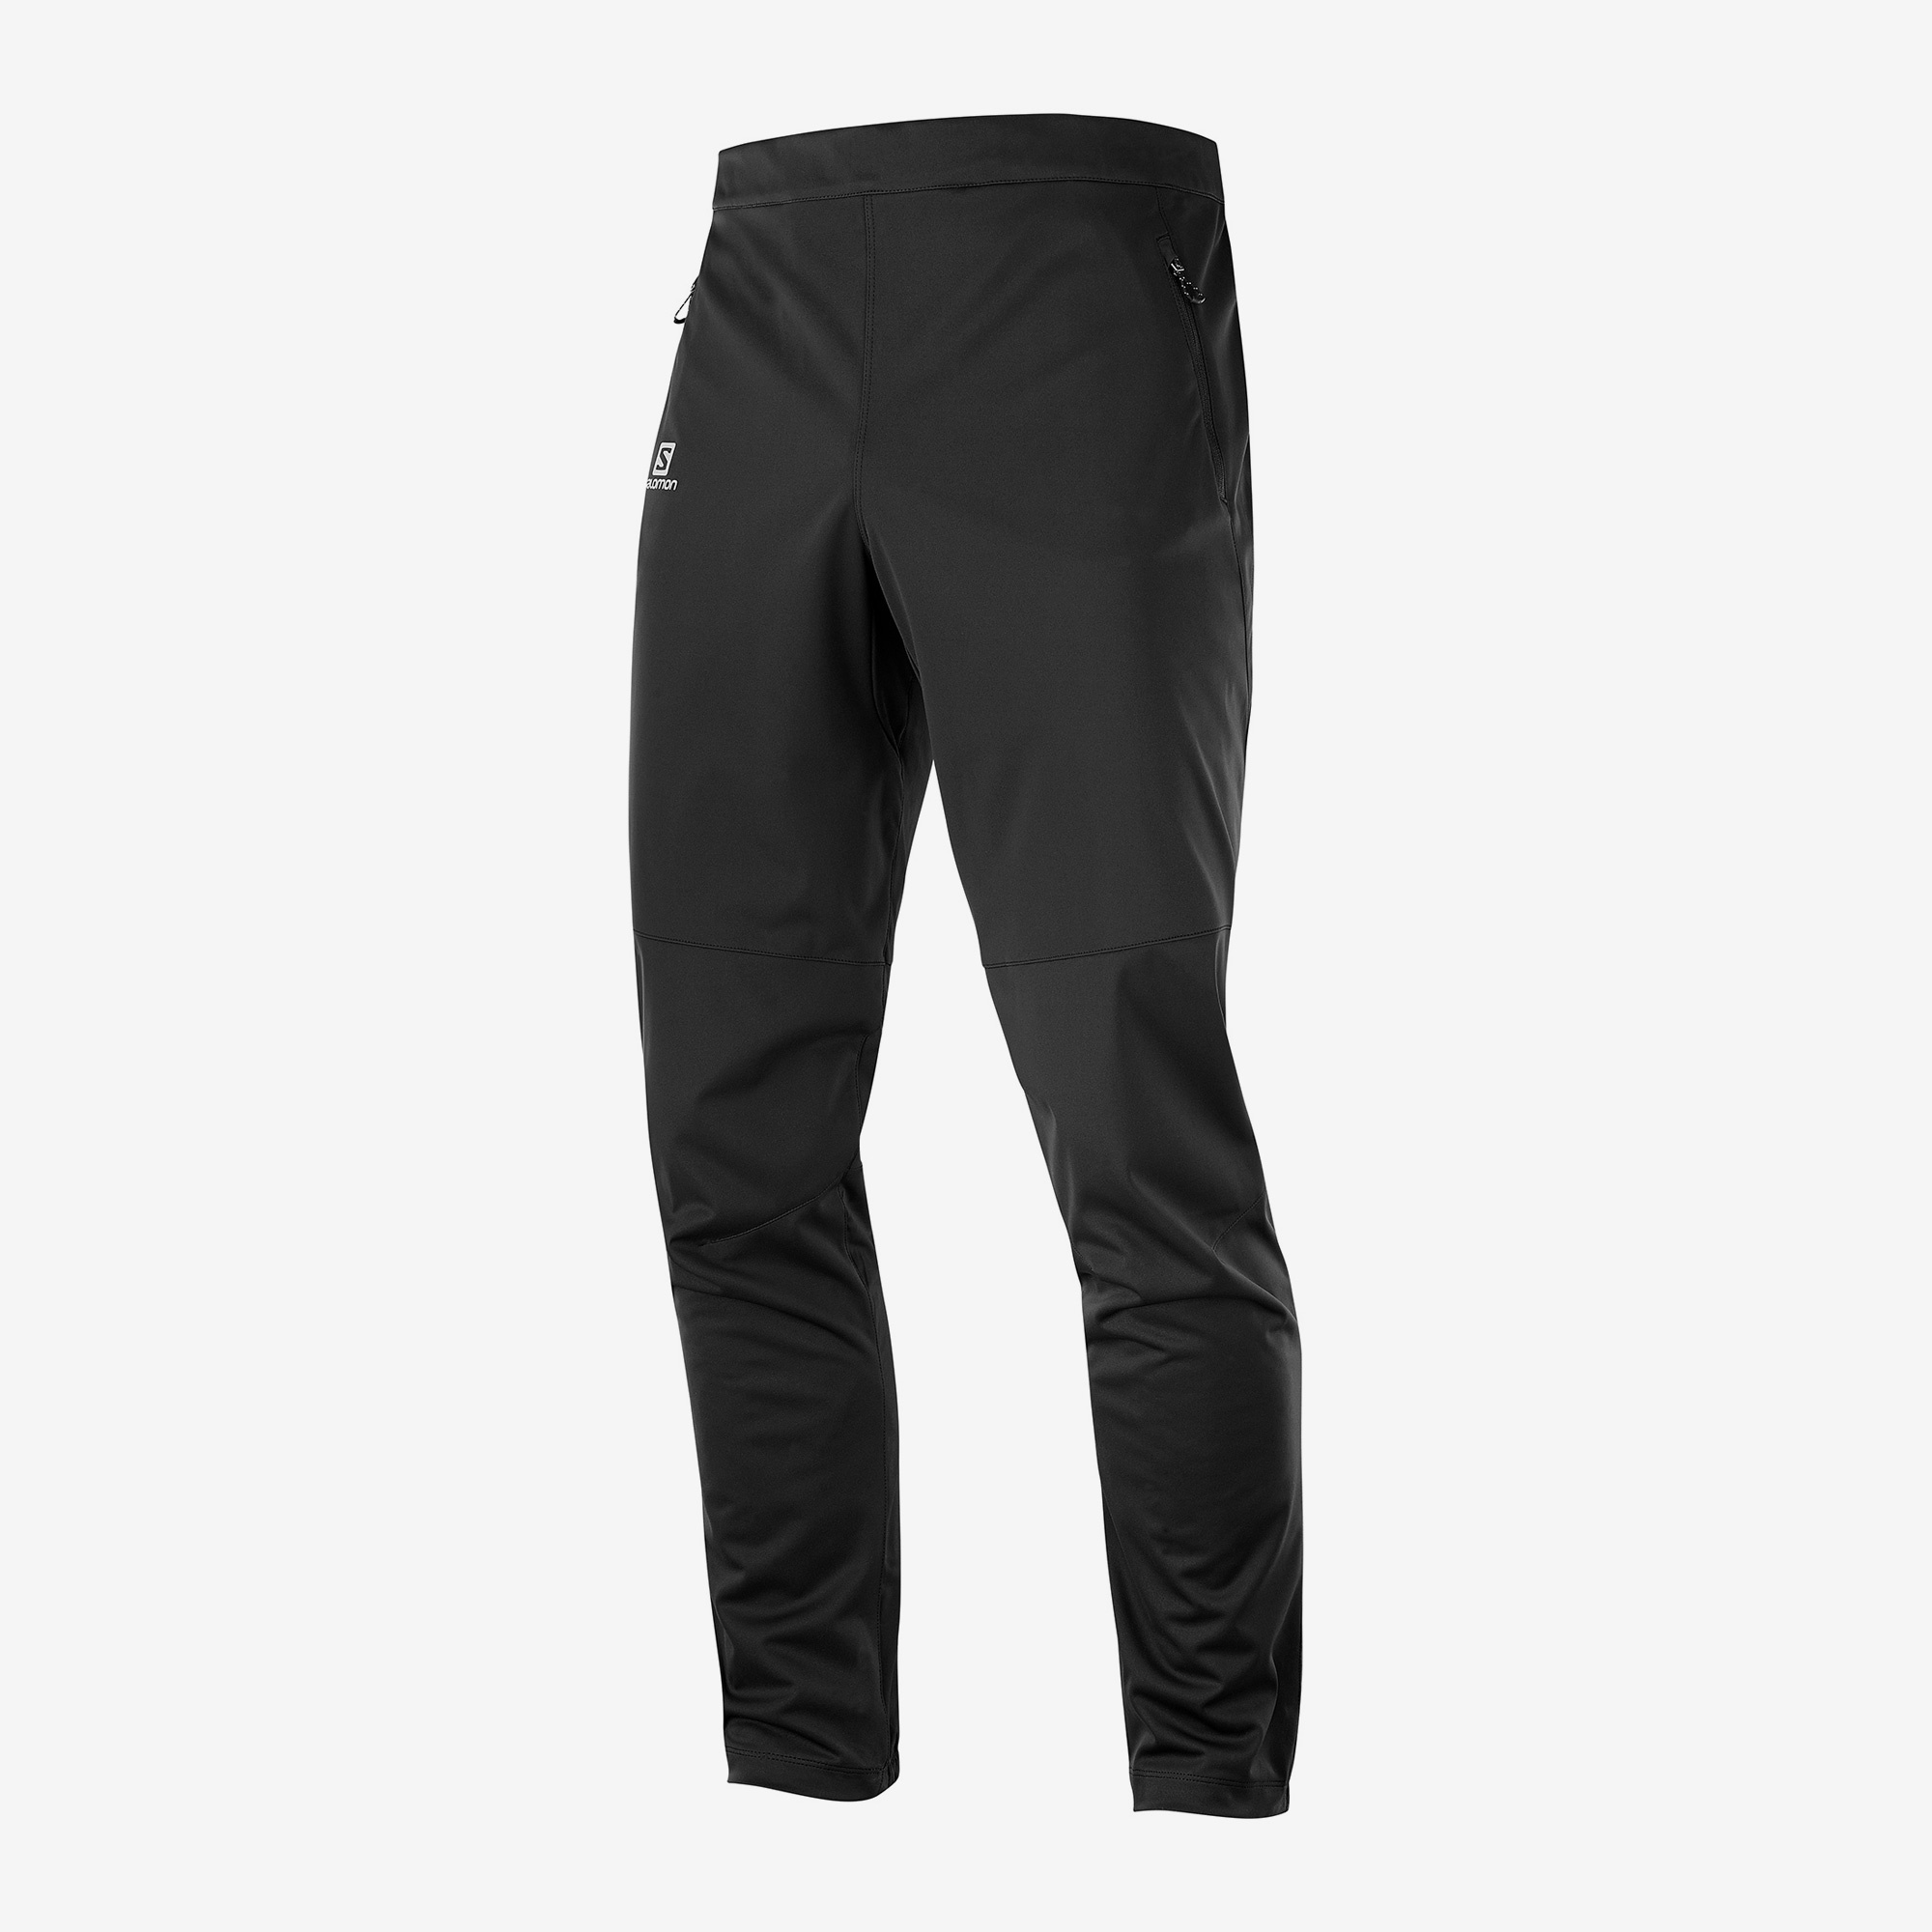 Salomon Men's RS Warm Pant